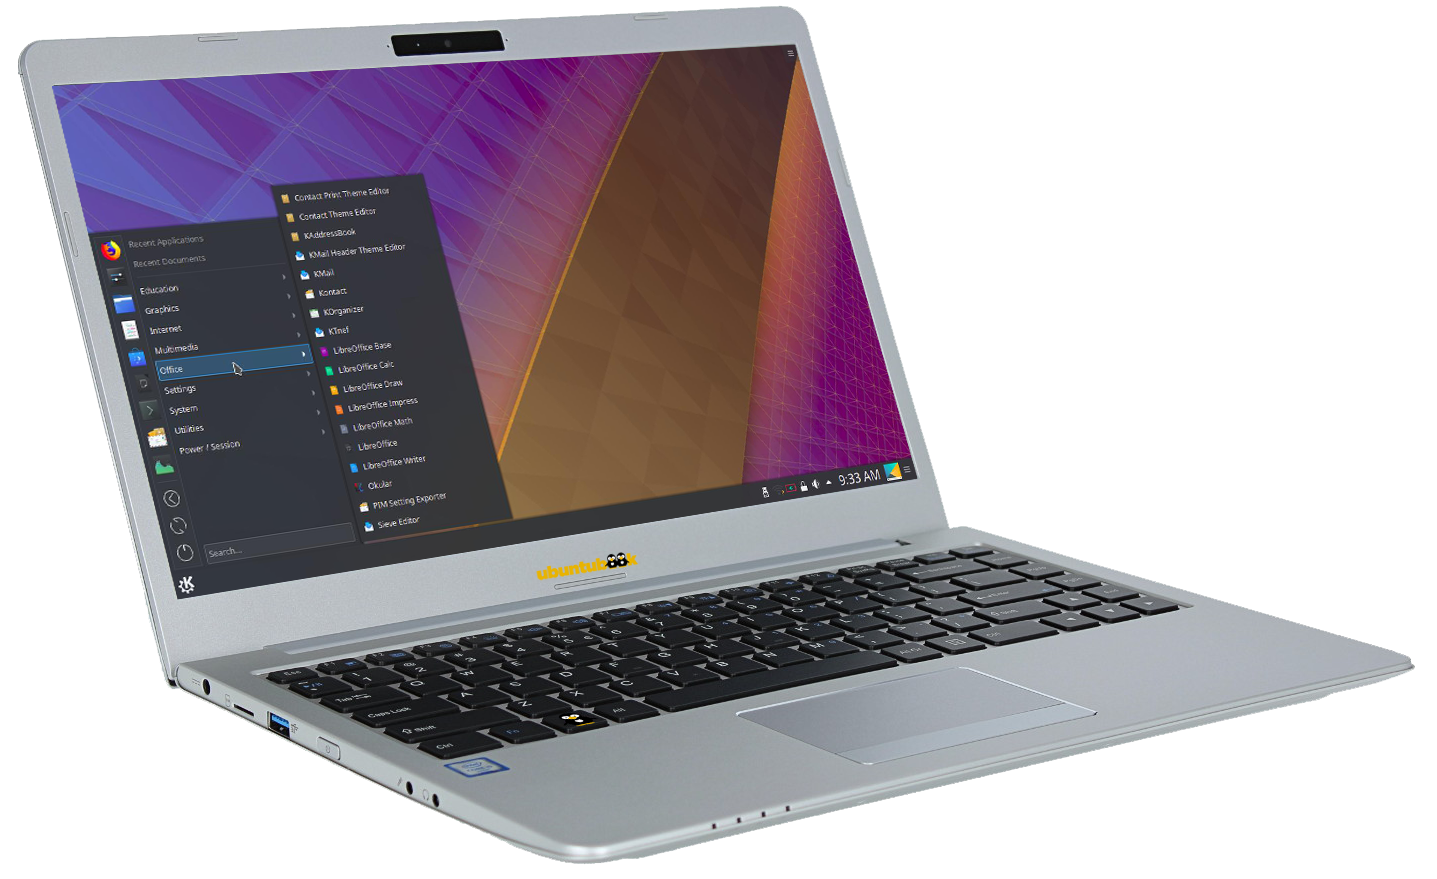 Ubuntu Secure Notebook 14